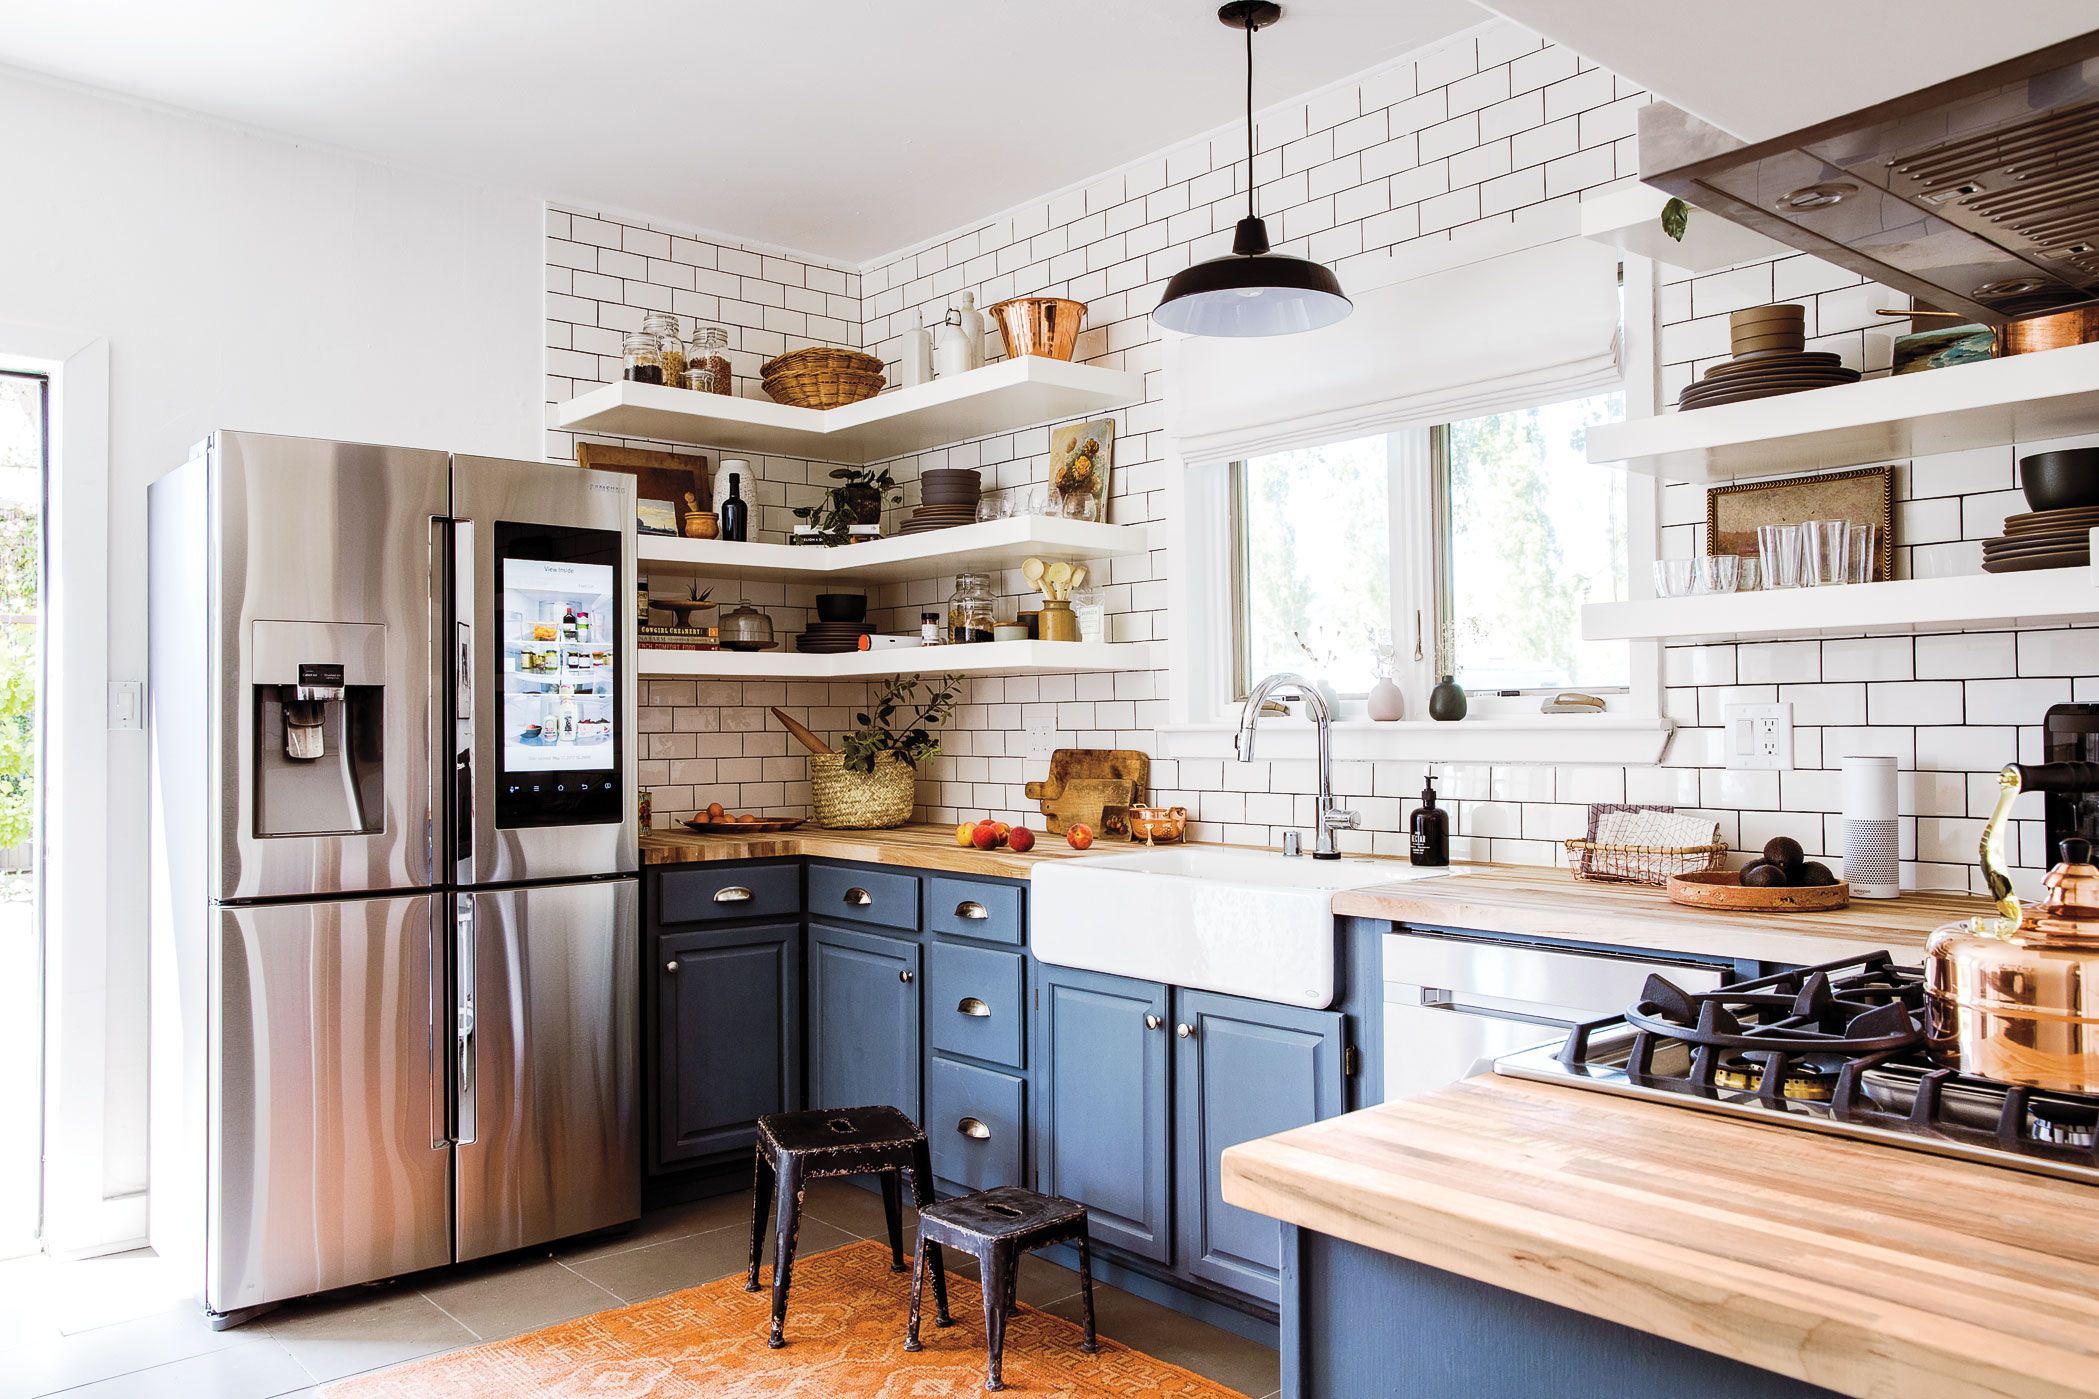 How To Give A Cottage A Connected Home Makeover Kitchen Remodel Small Kitchen Remodel Kitchen Design